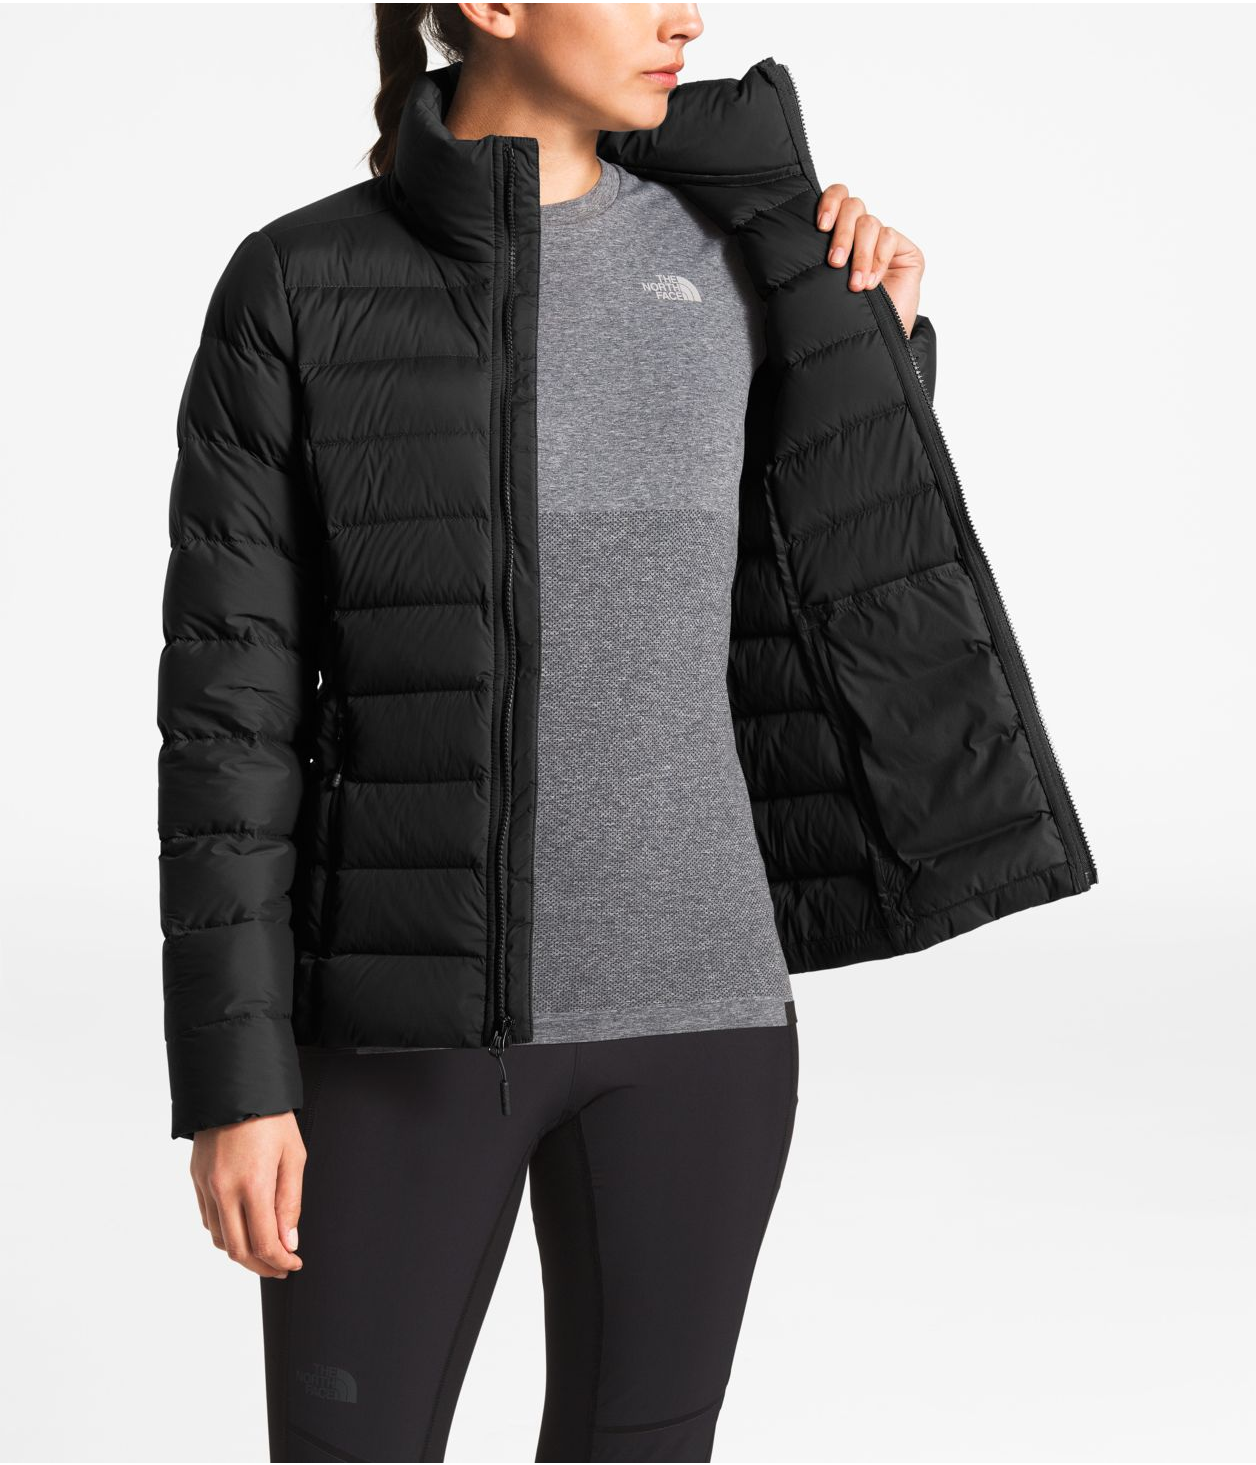 9f42097f0 Details about The North Face Stretch Down Jacket TNF Black (NF0A3O7EJK3)